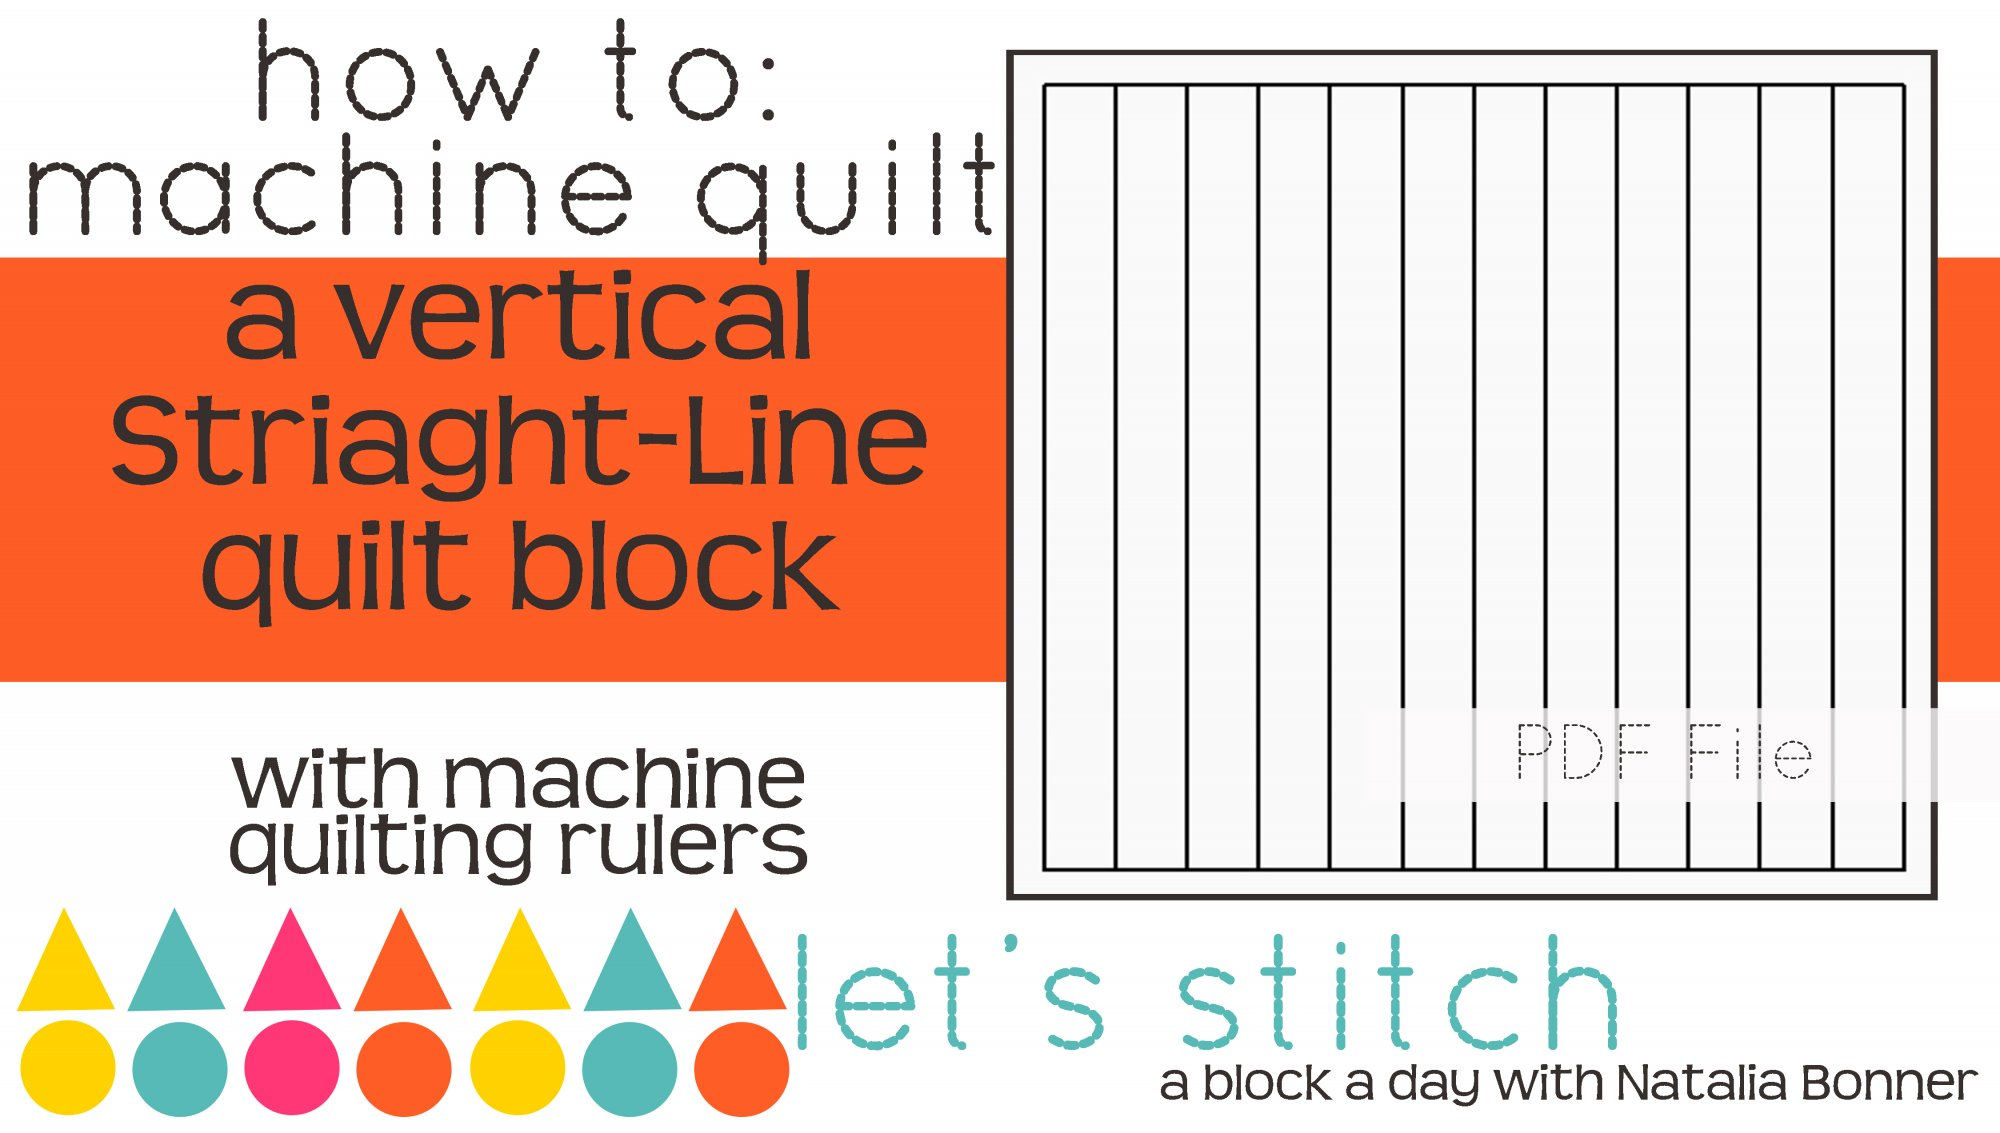 Let's Stitch - A Block a Day With Natalia Bonner - PDF - Vertical Straight Lines